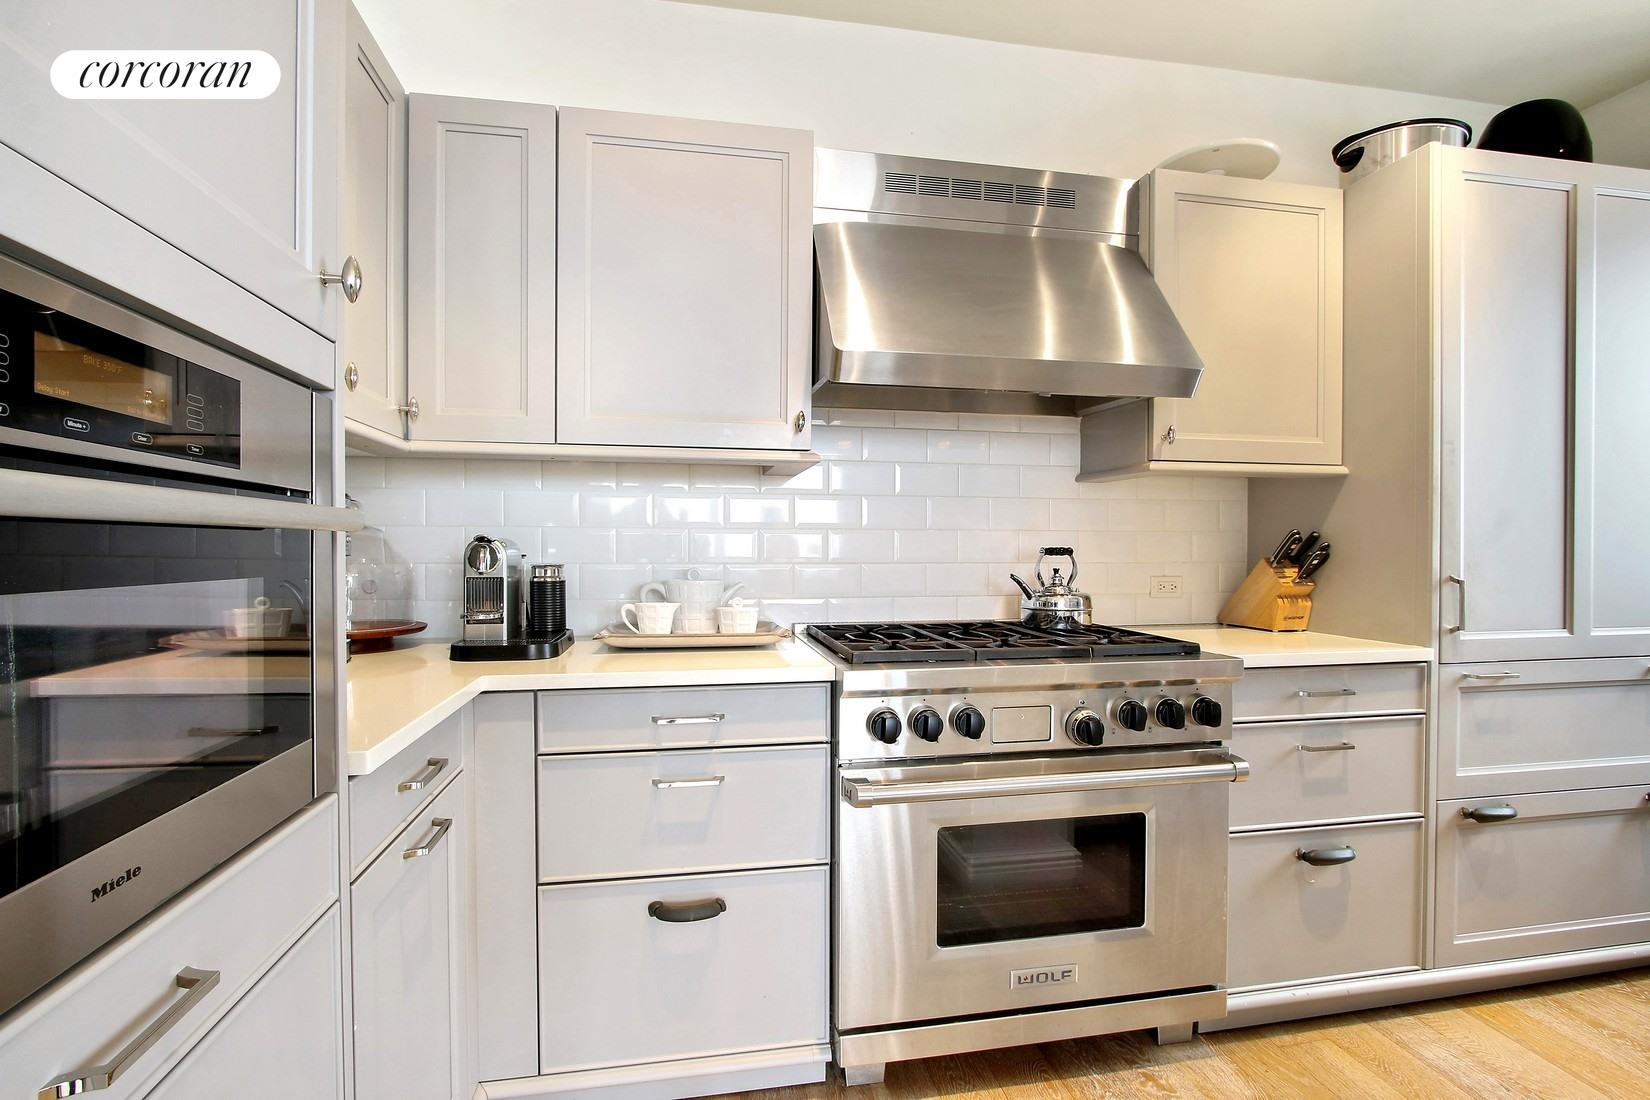 Corcoran, 524 East 72nd Street, Apt. 28AG, Upper East Side Real ...